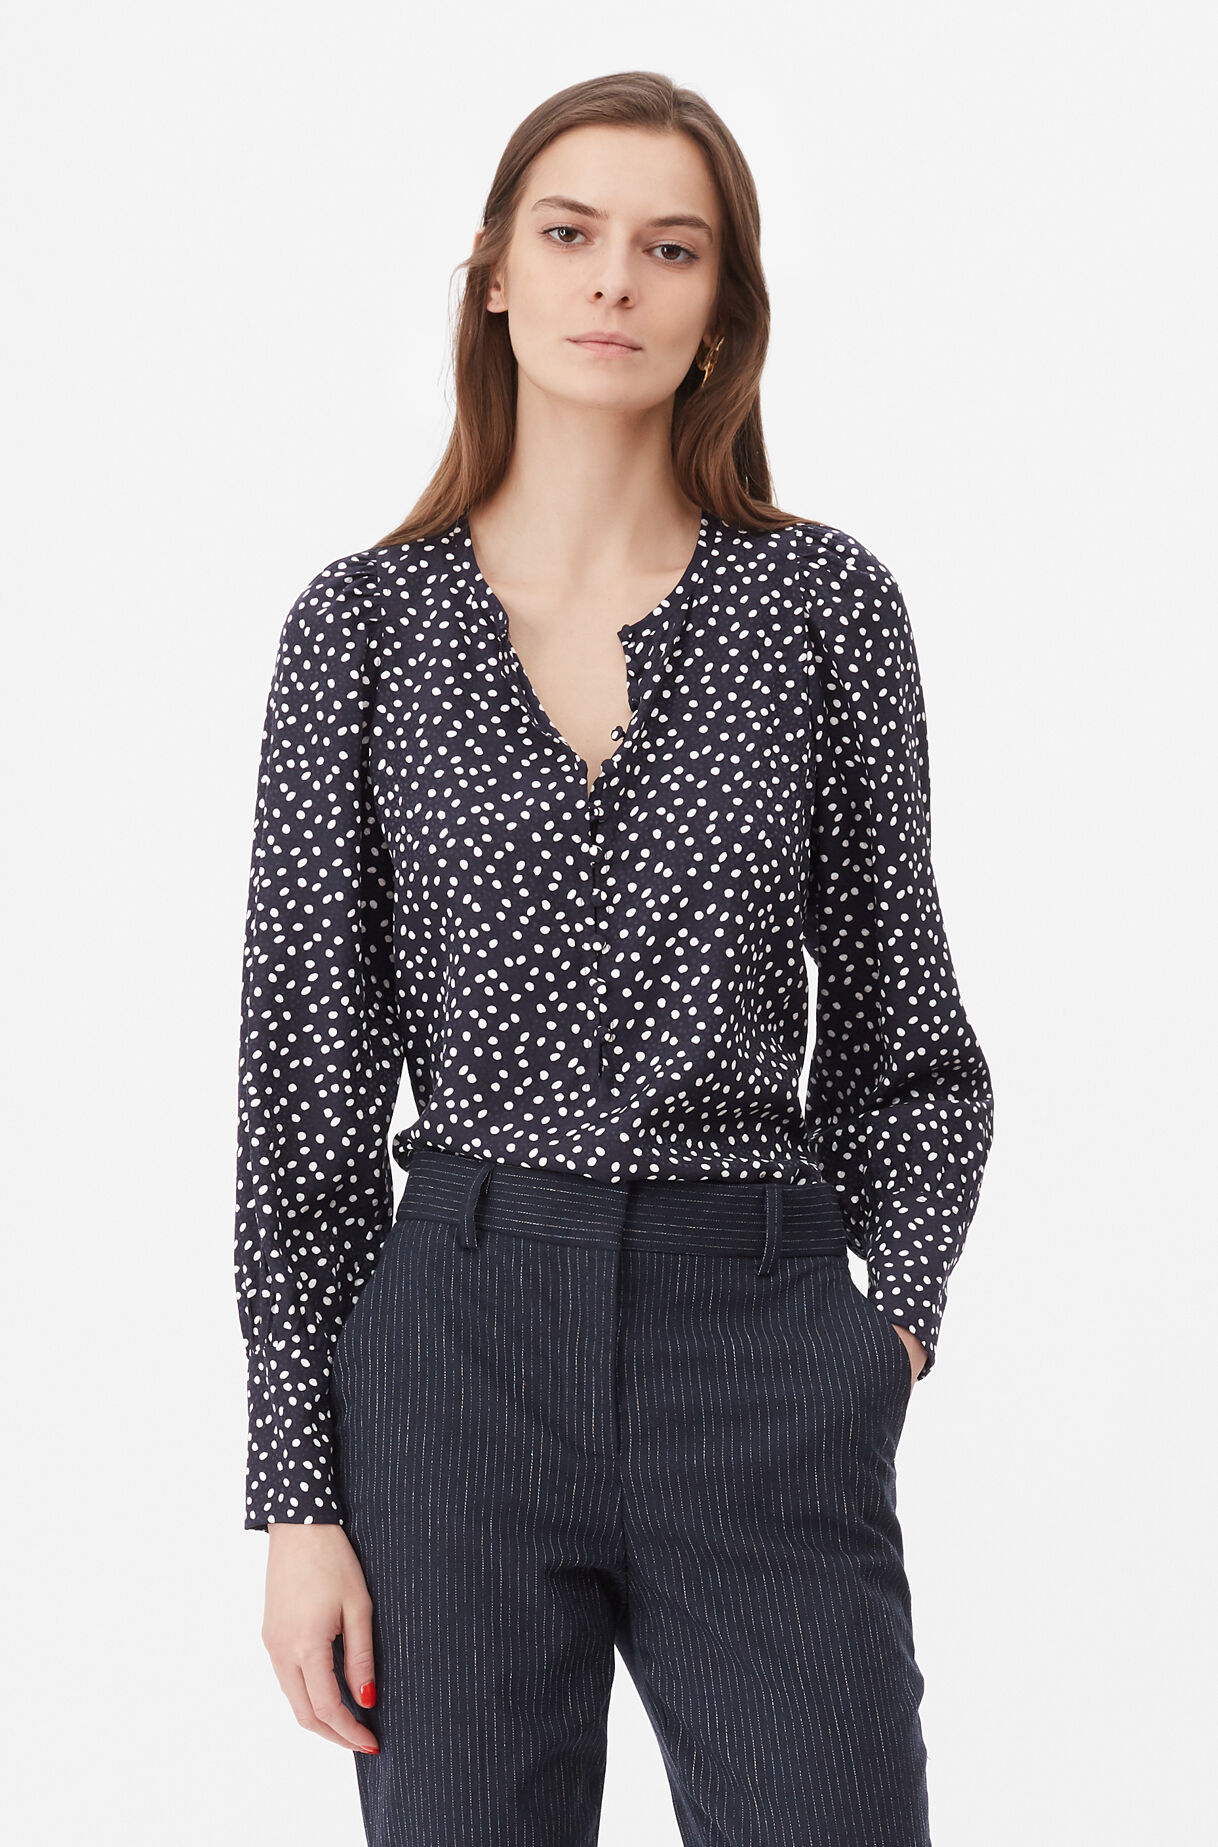 Tailored Pearl Dot Jacquard Top, , large